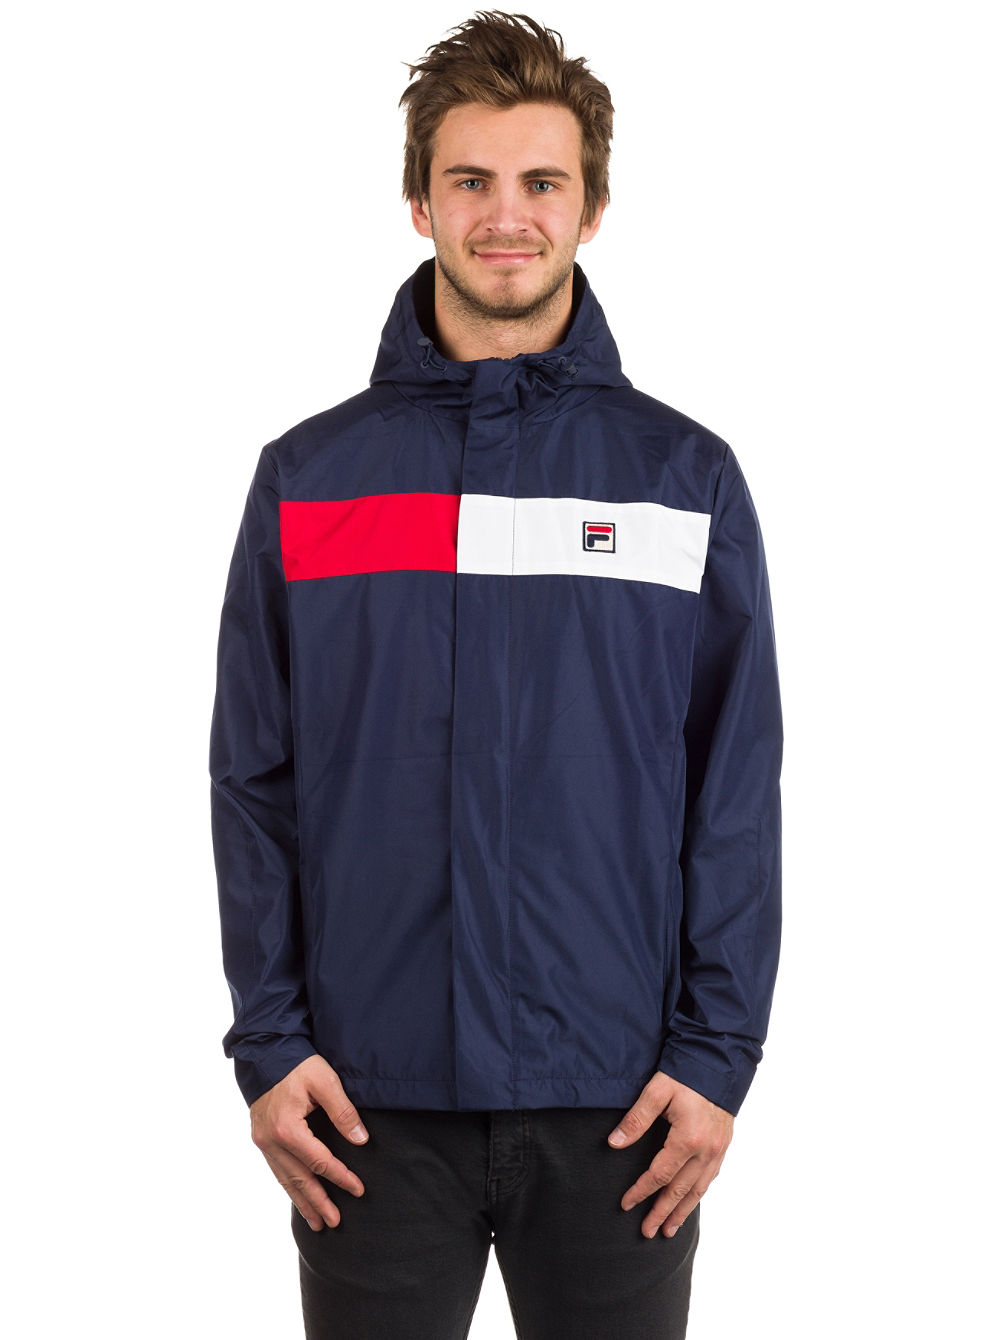 Buy Fila Cardova Jacket online at blue-tomato.com cdd56a89f8a0